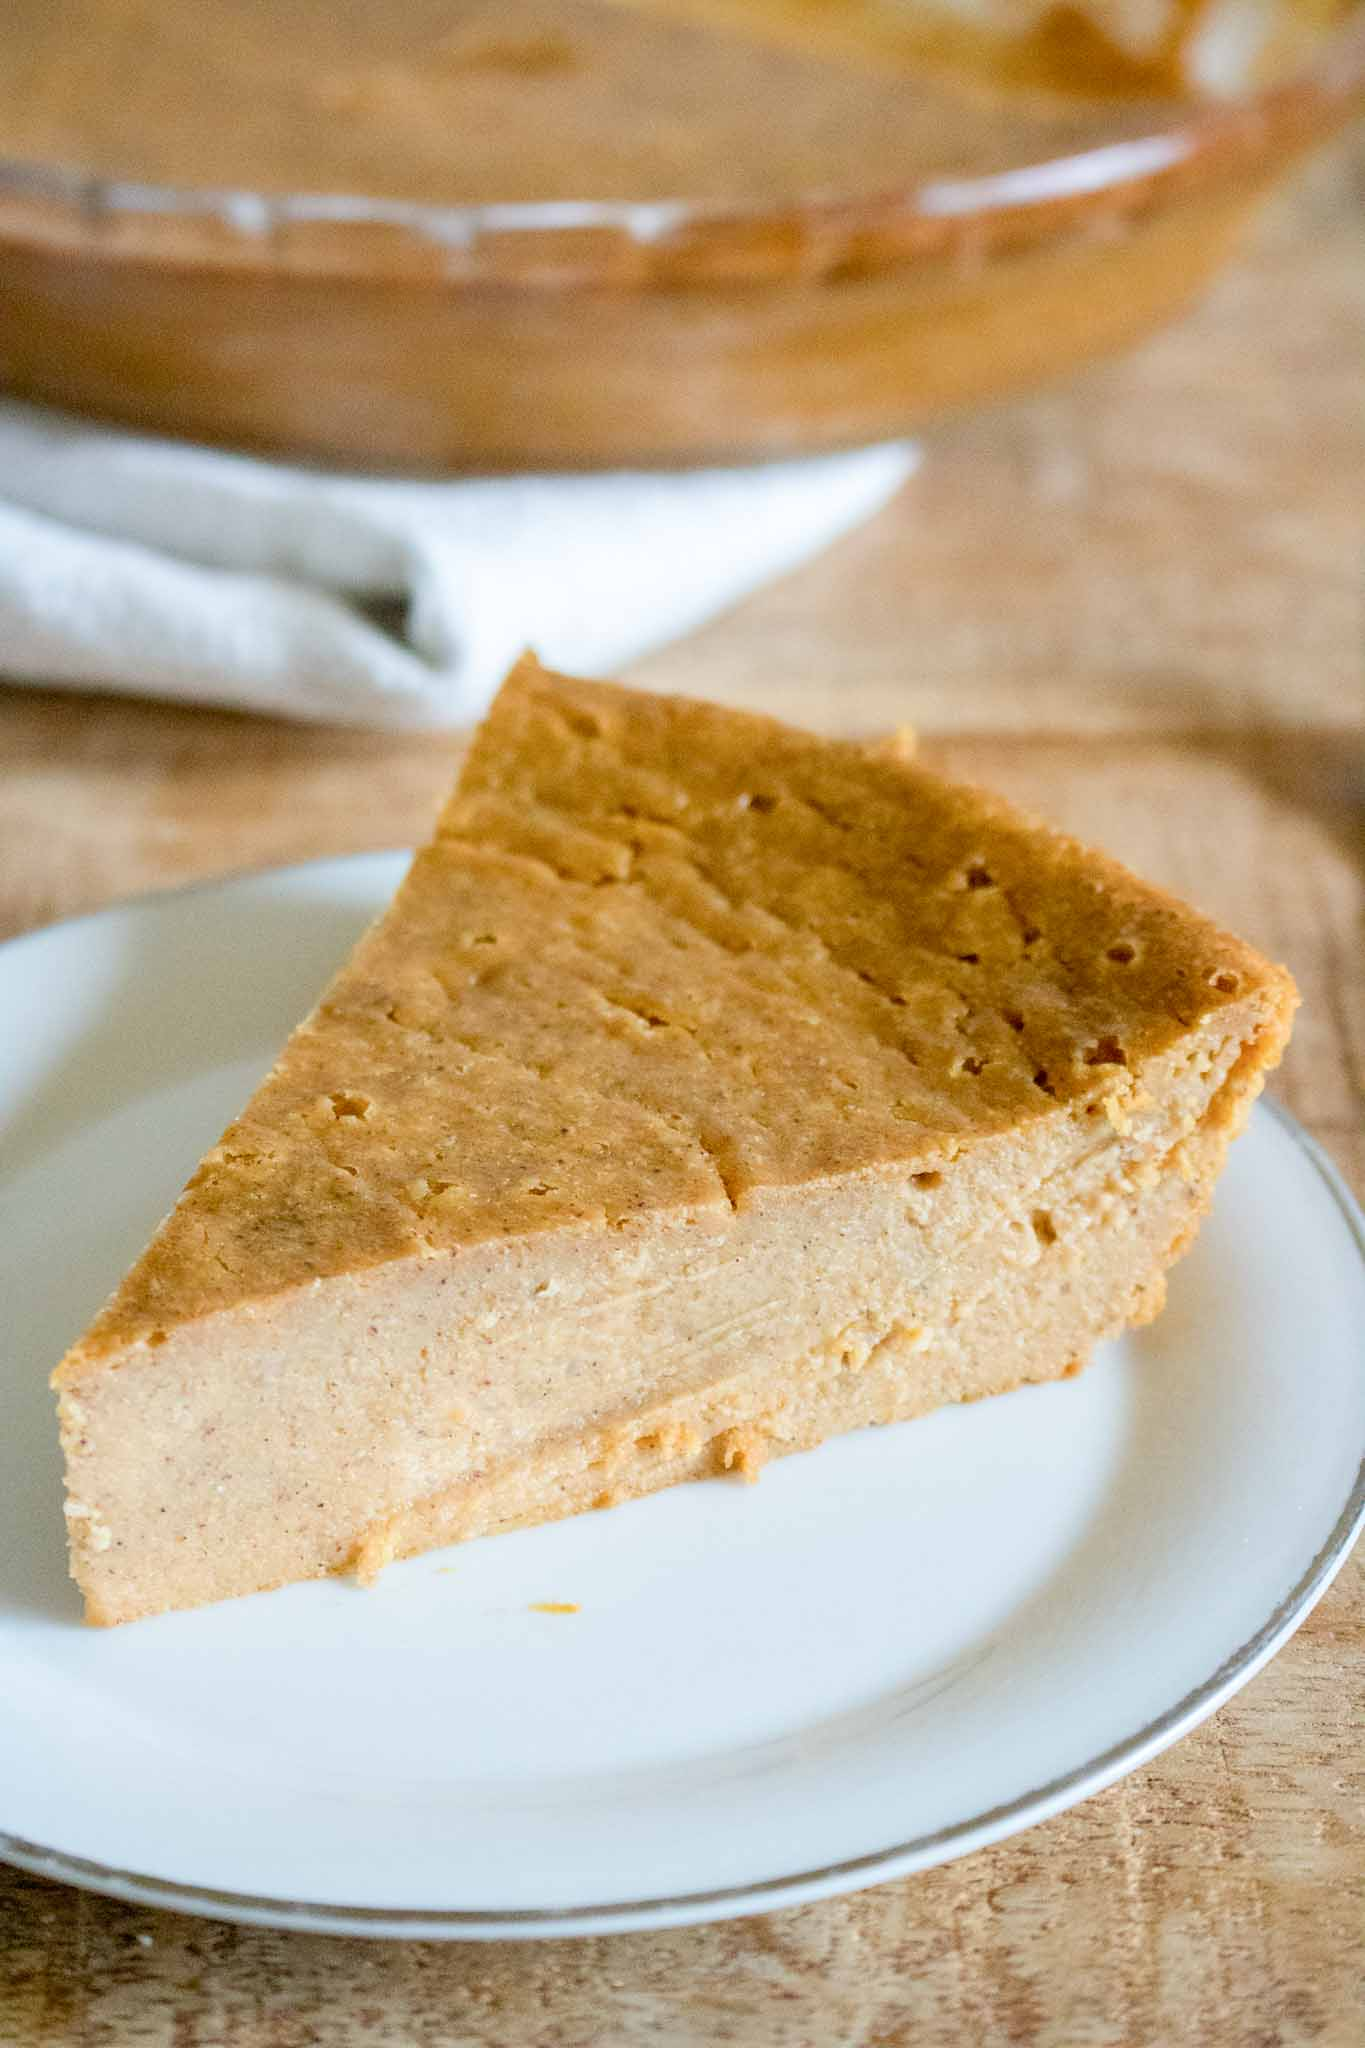 crustless pumpkin pie on plate